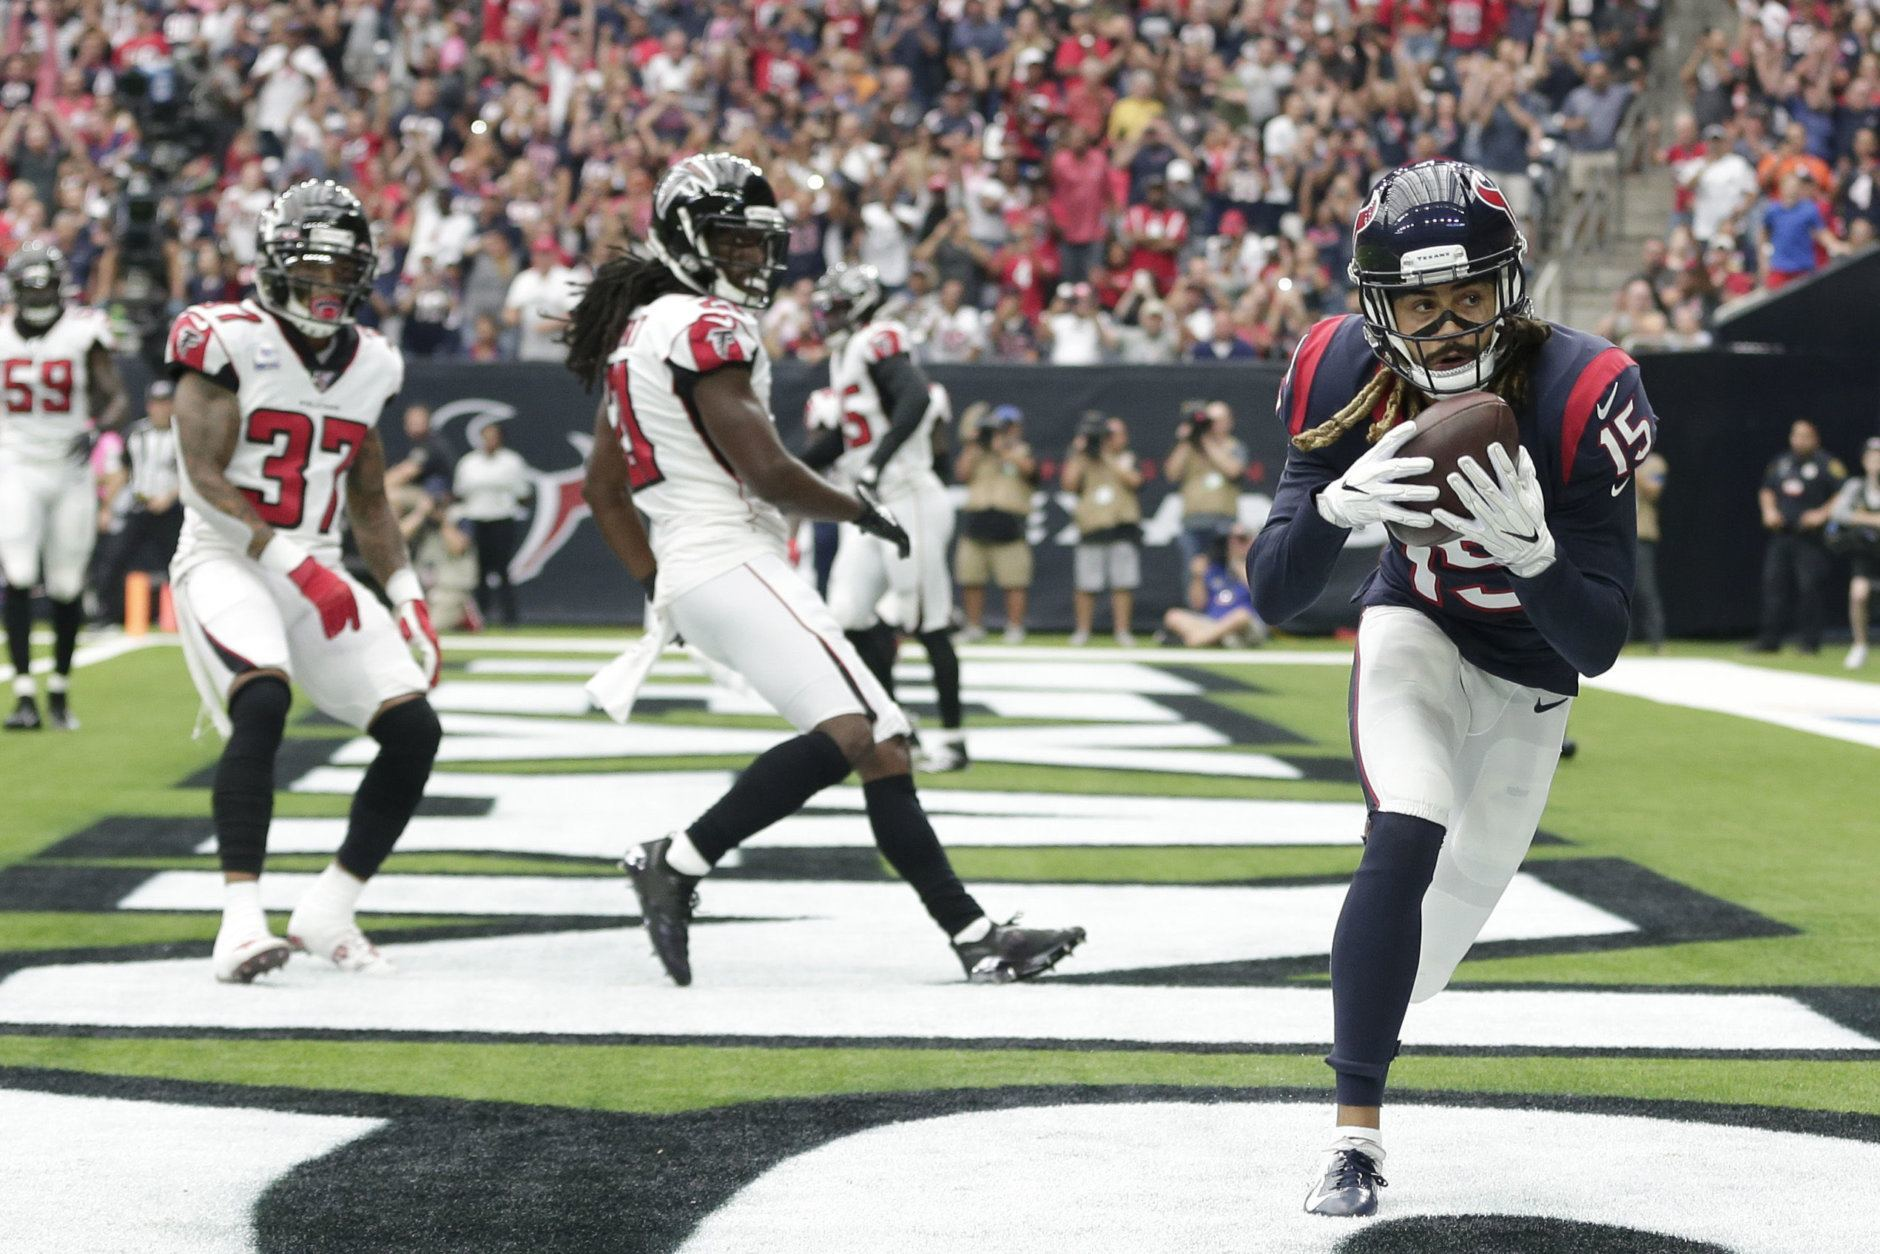 <p><b><i>Falcons 32</i></b><br /> <b><i>Texans 53</i></b></p> <p>Will Fuller&#8217;s ridiculous 14-catch, 217-yard, 3-TD outburst goes down as one of the top 10 fantasy performances by a receiver and Deshaun Watson had a perfect passing game (he had as many touchdowns as incompletions!) to put Houston atop their division and Atlanta at the bottom of theirs. Now, if you&#8217;ll excuse, I&#8217;m going to slink away and hope no one remembers my preseason prediction for the Falcons.</p>